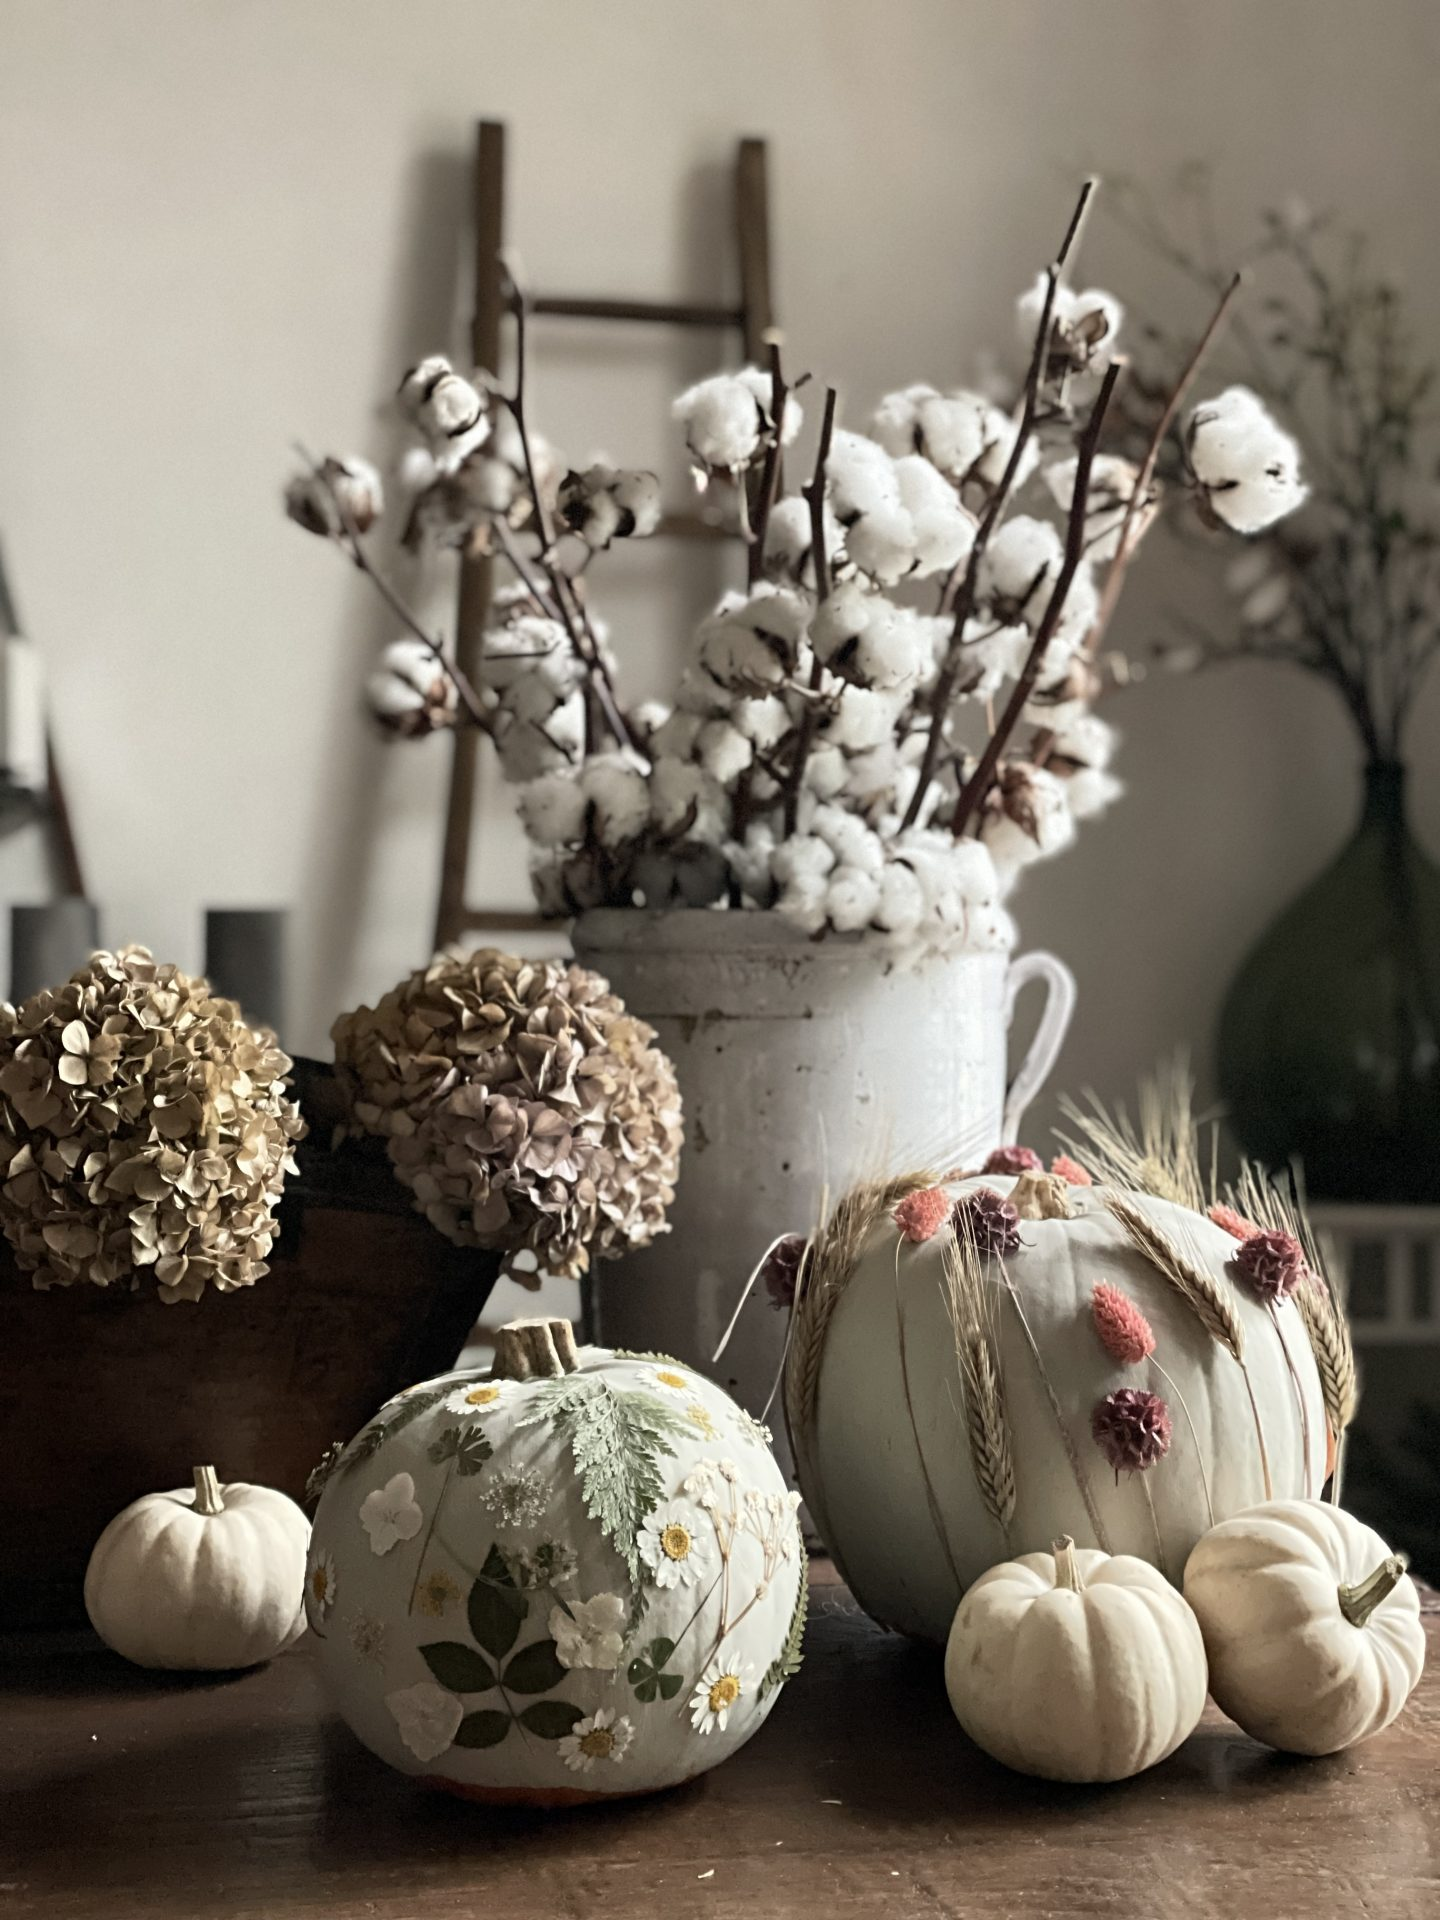 Pumpkins covered in dried flowers